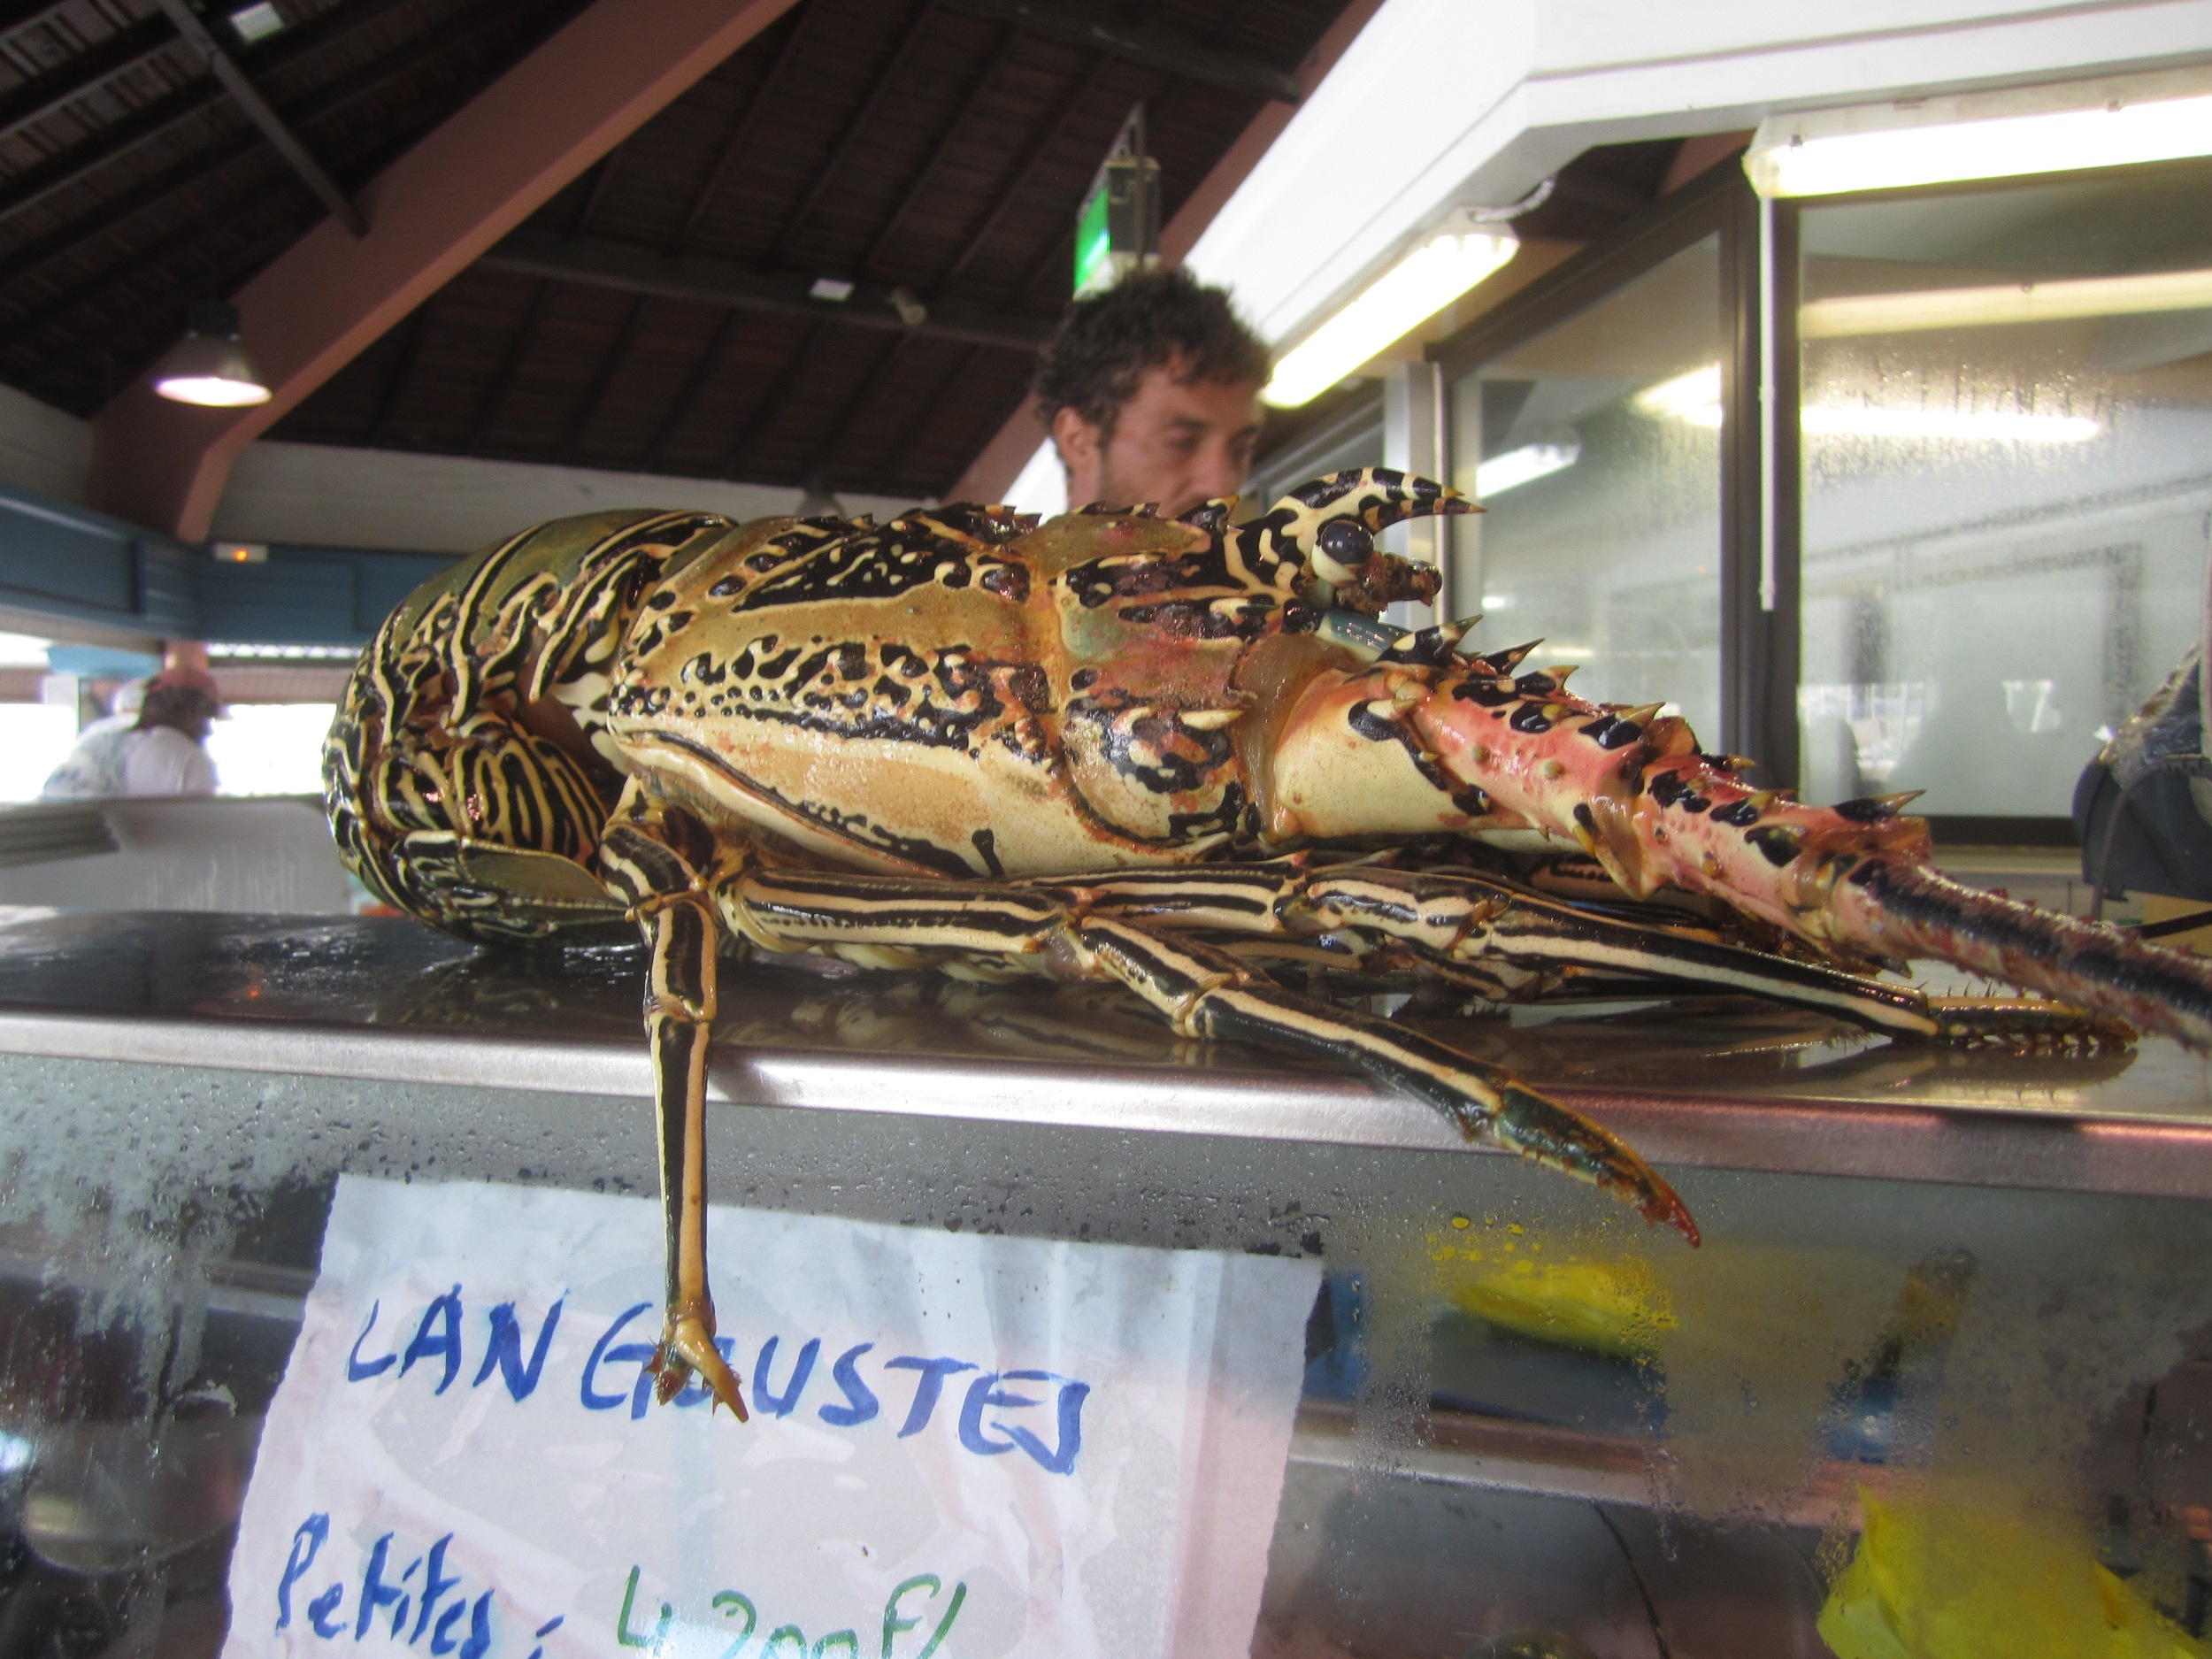 The enticing displays of fresh seafood and produce in the market of Noumea on Grande Terre made us wish we had our own kitchen and more time on the island.